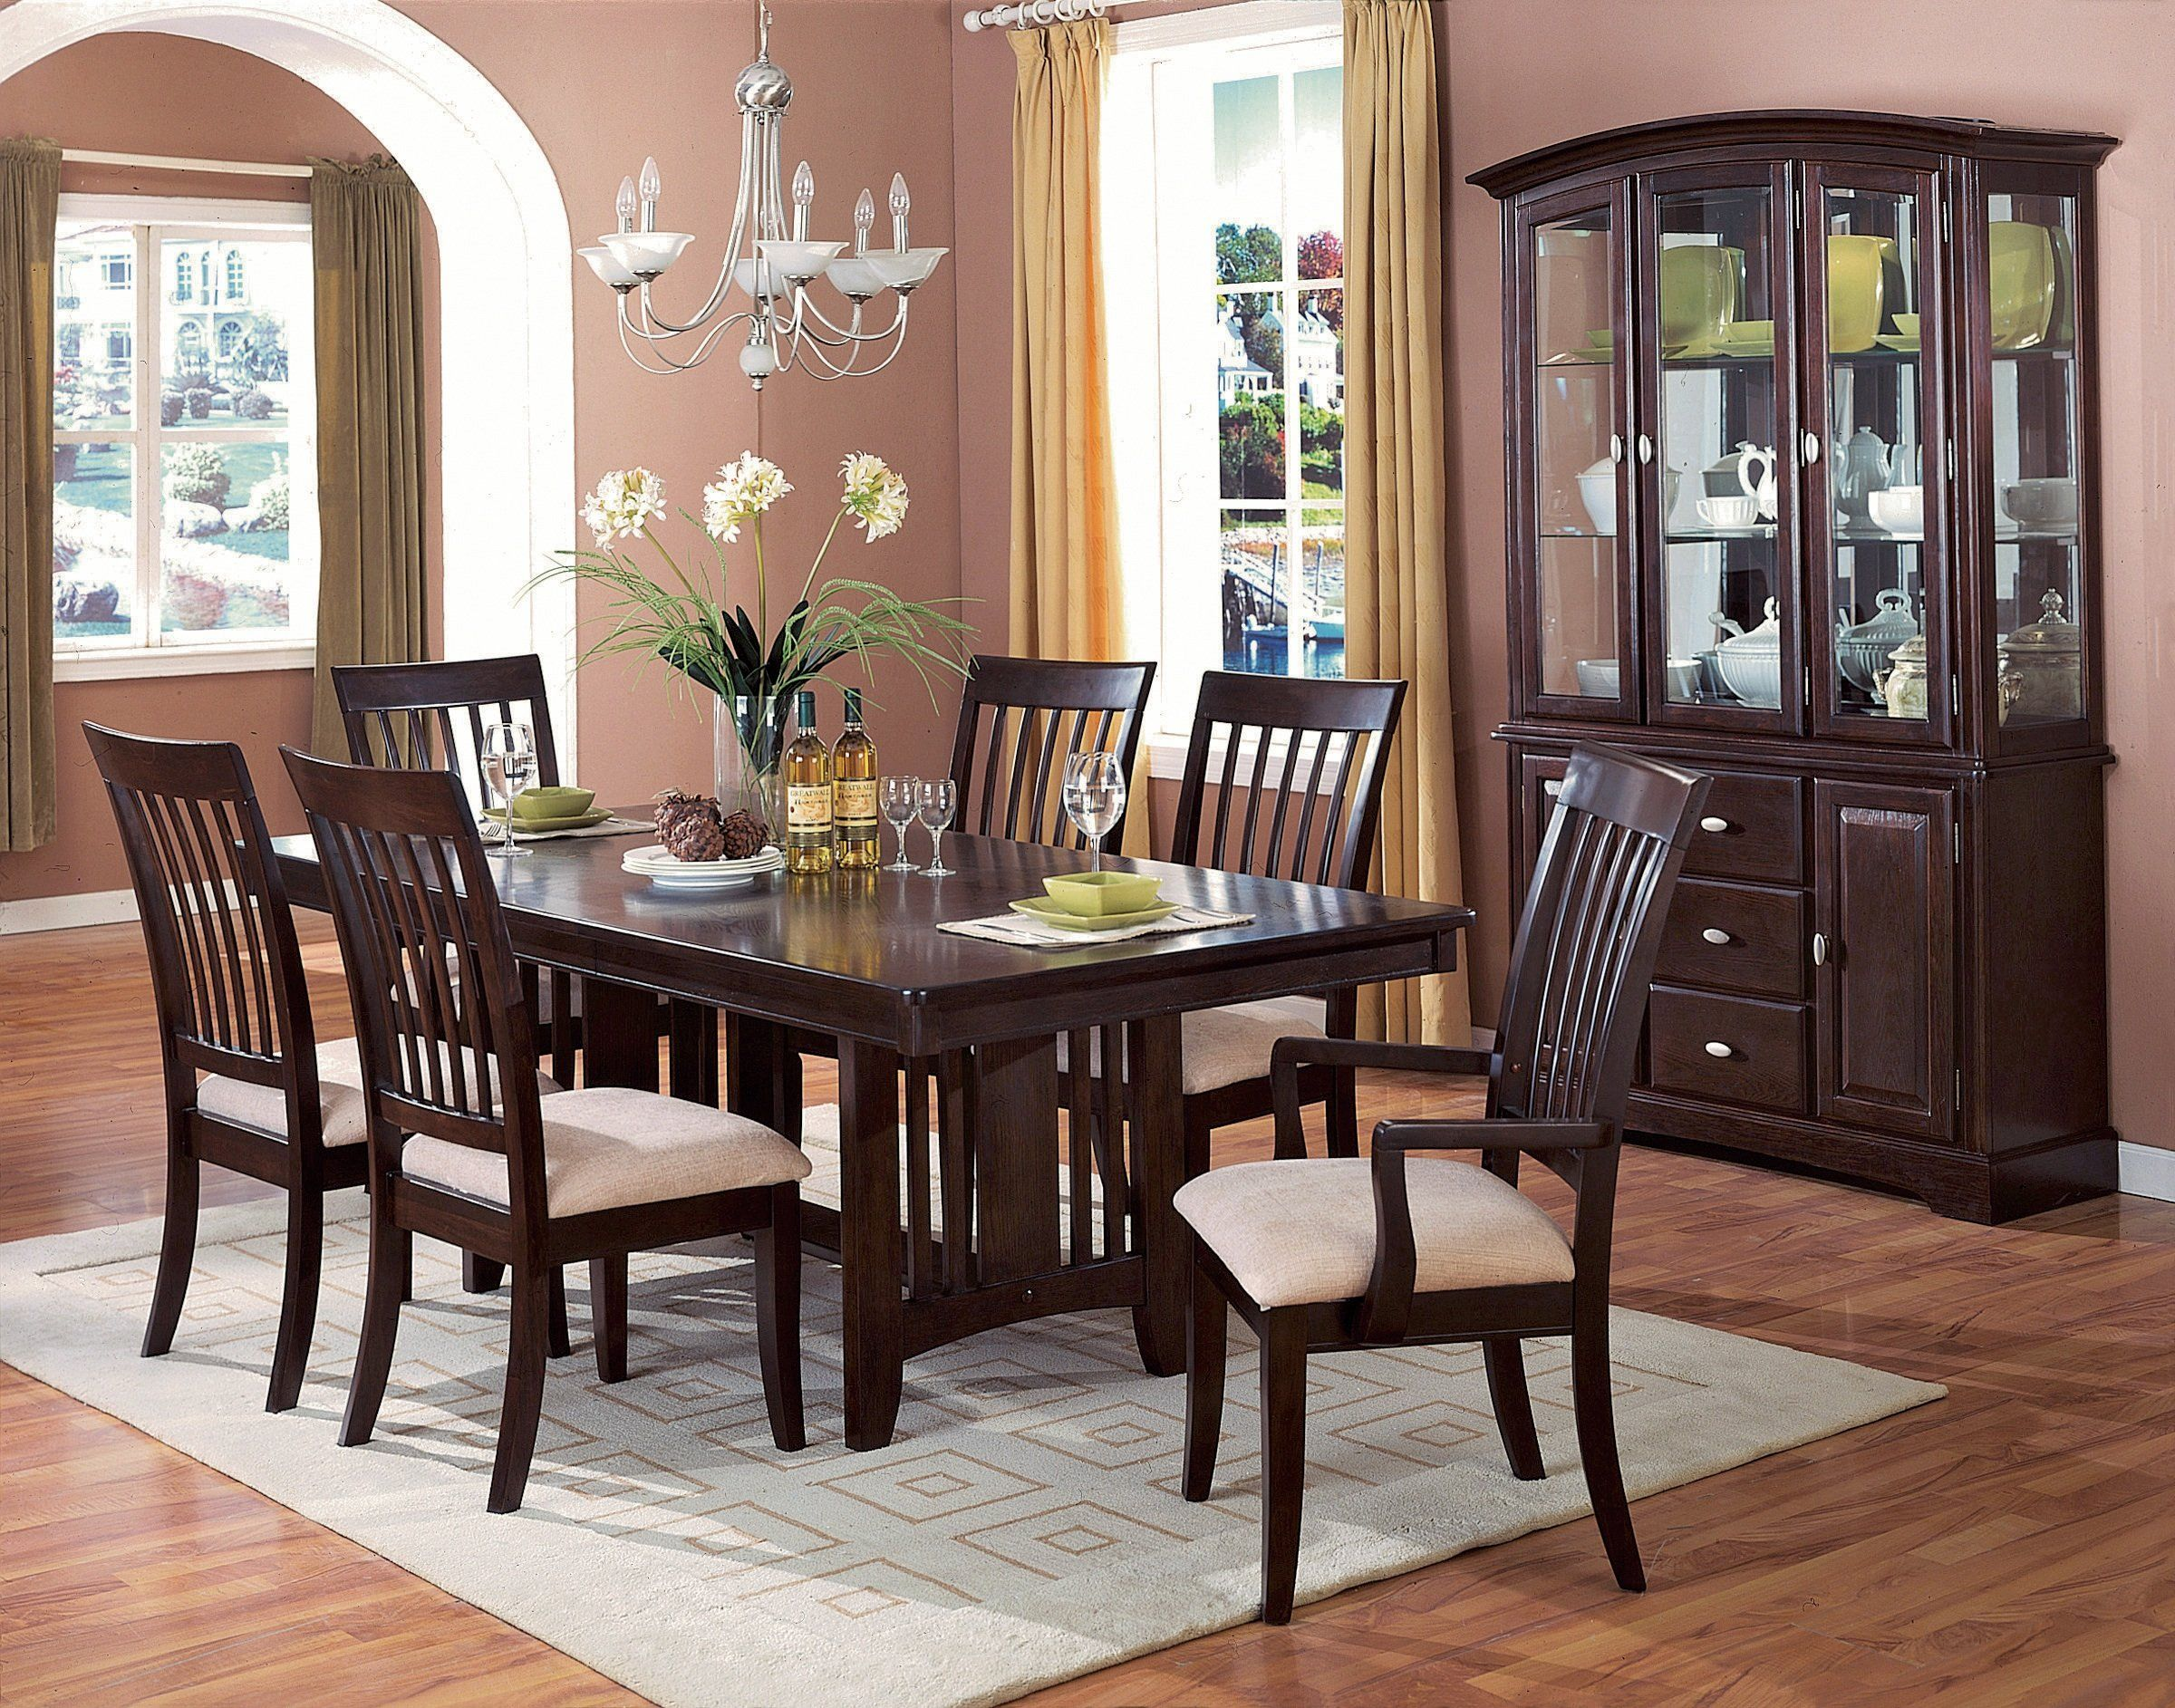 18 best dining room furniture images on pinterest | dining room